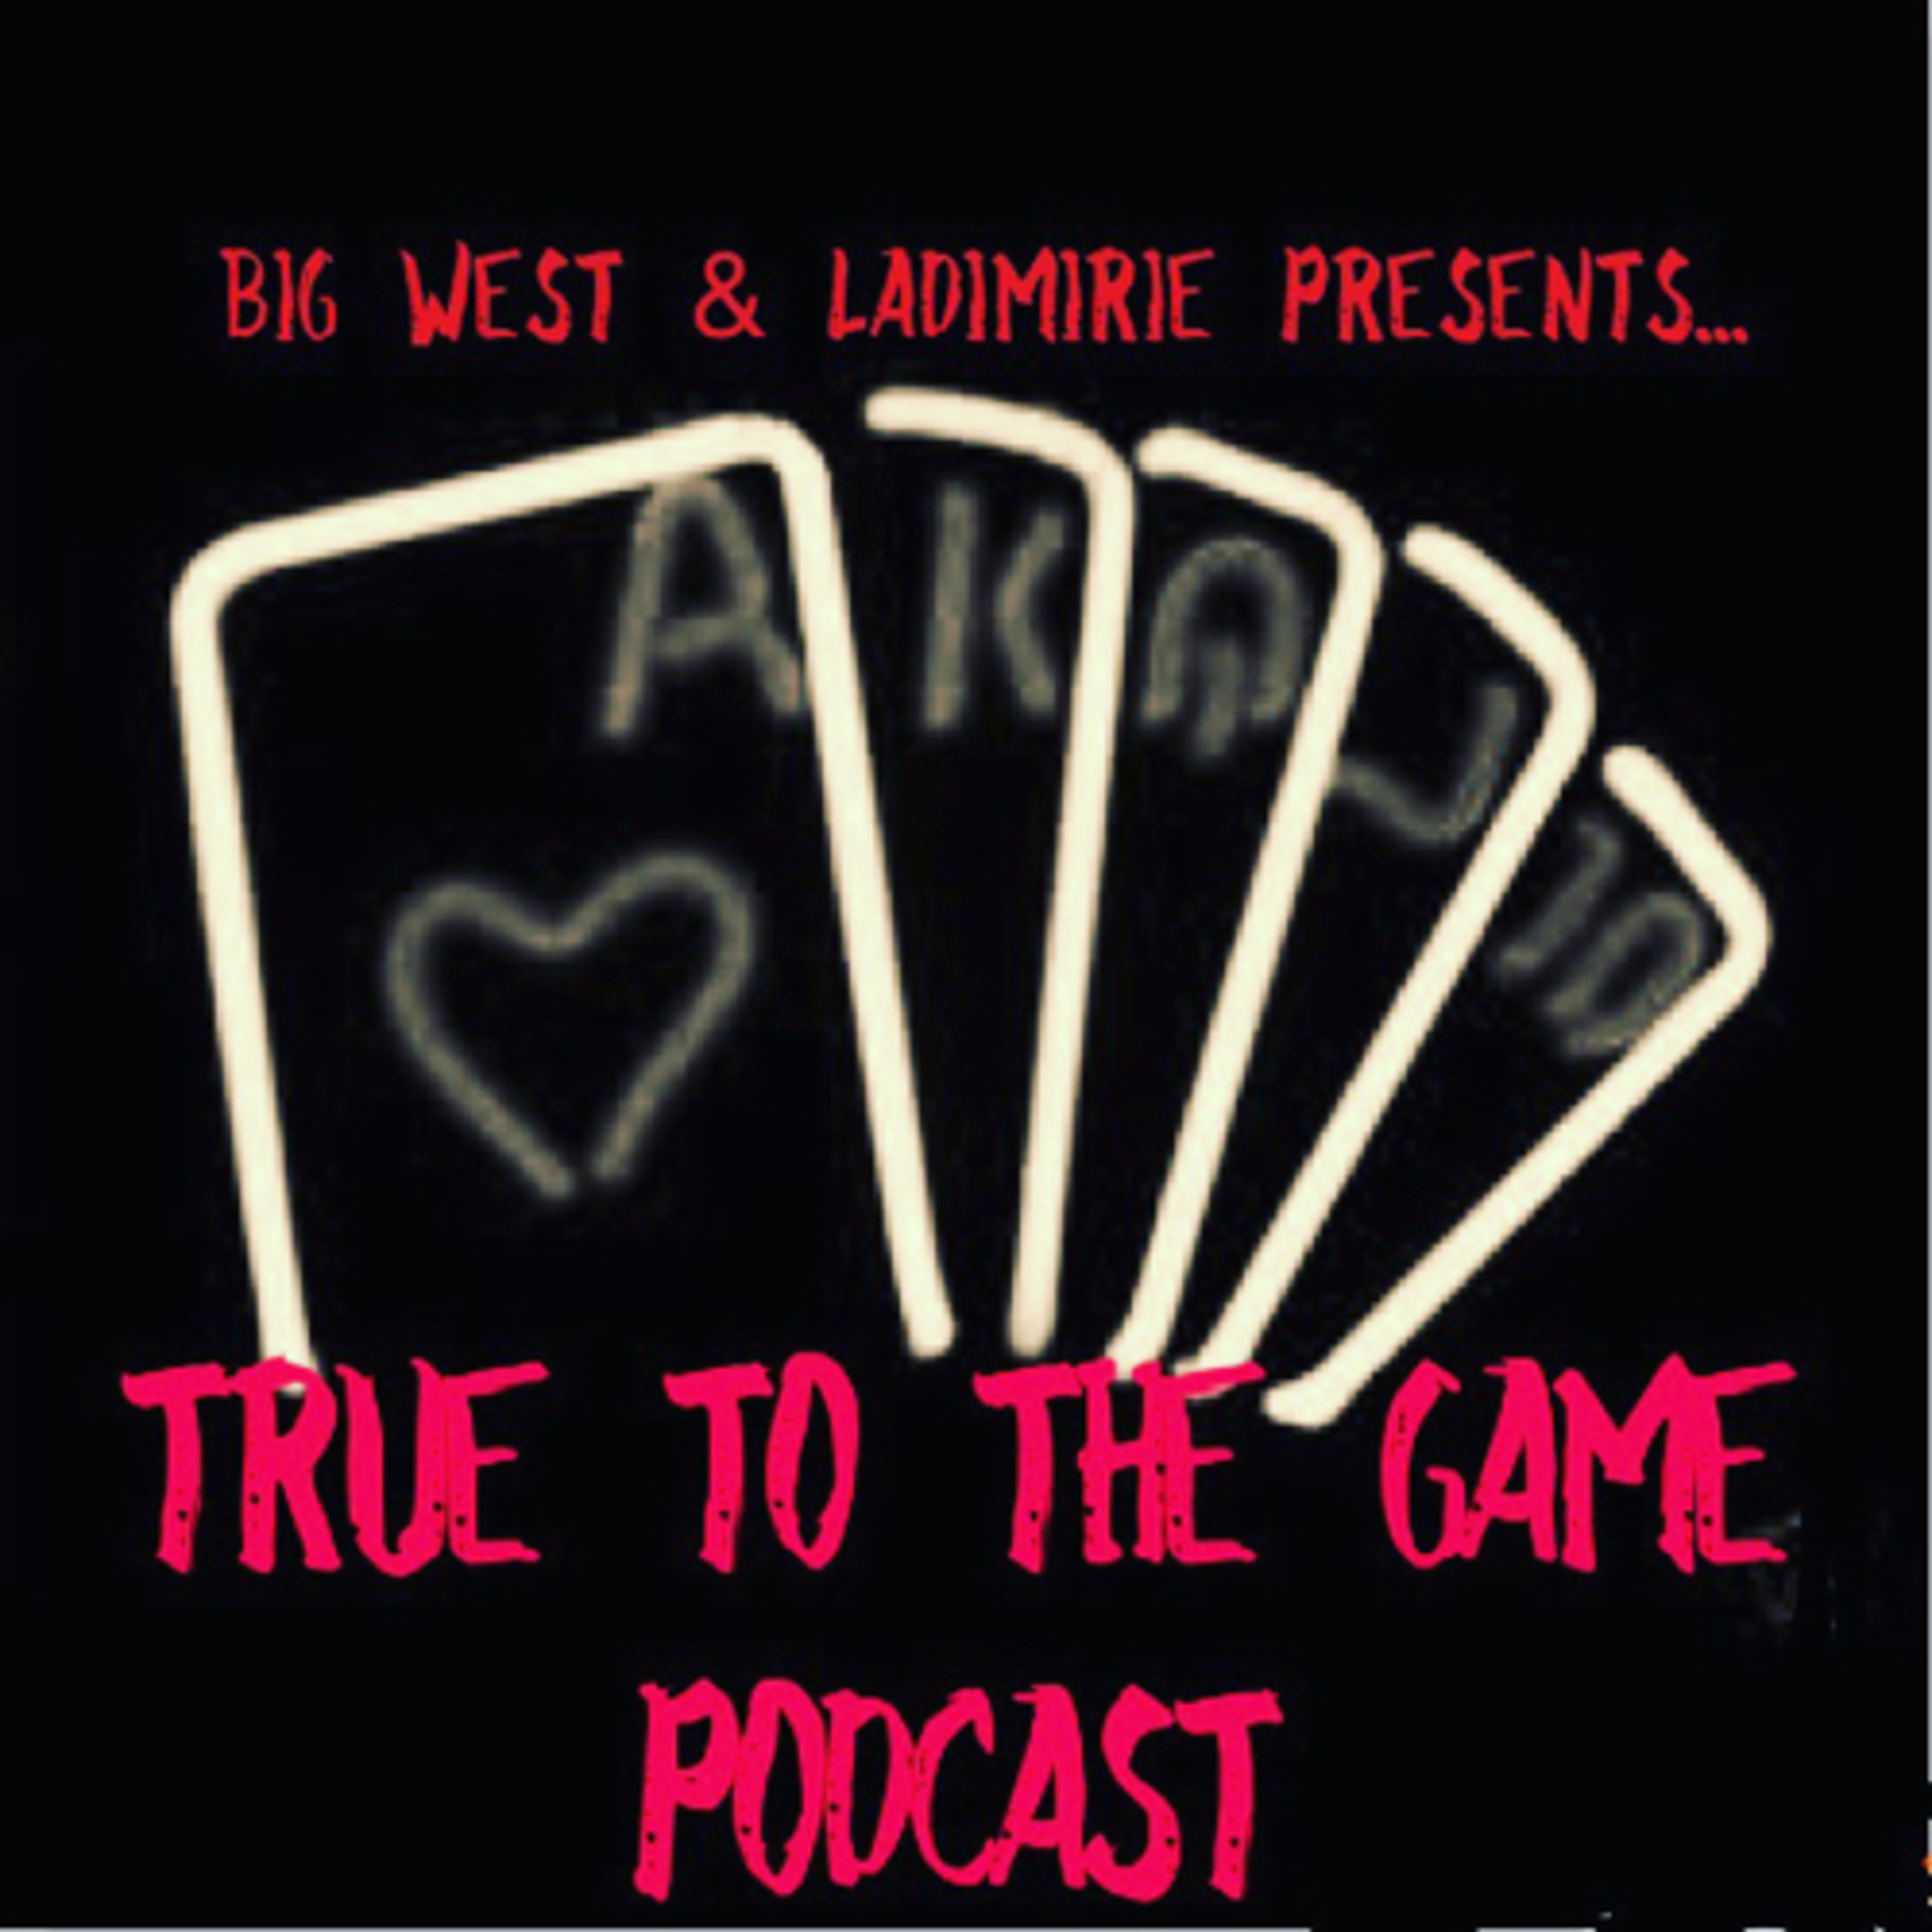 True To the Game podcast episode 5: nostalgia triggers